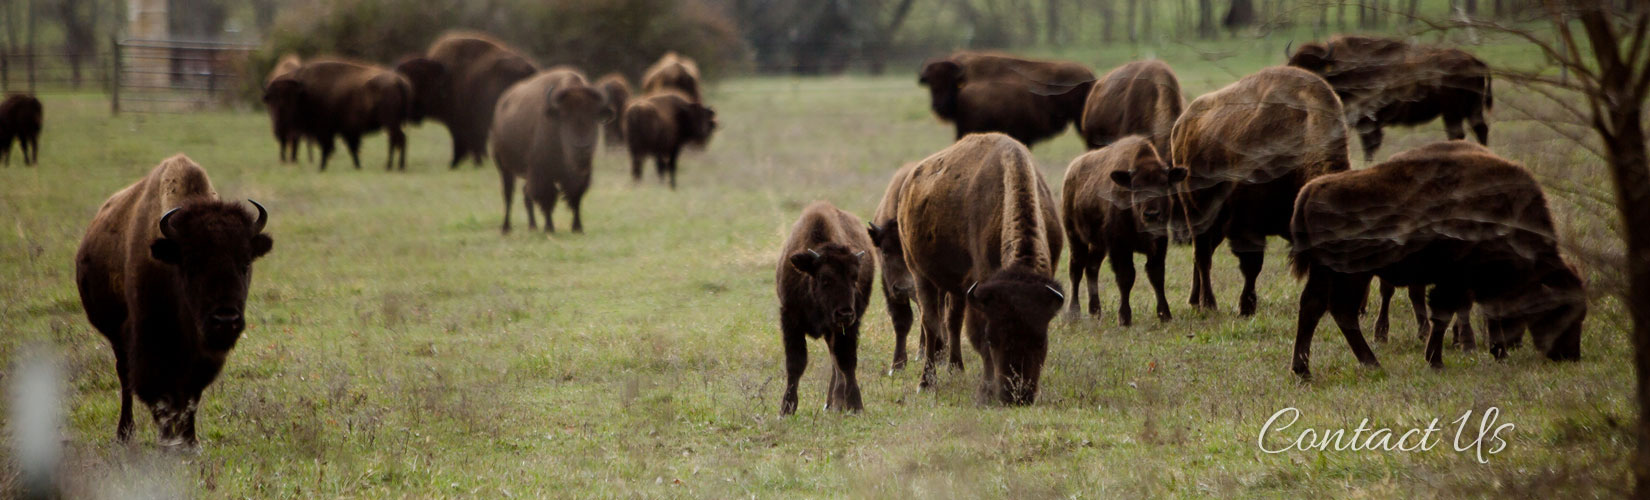 Buffalo Ridge Premium Bison Meat & Quality Breeding Stock